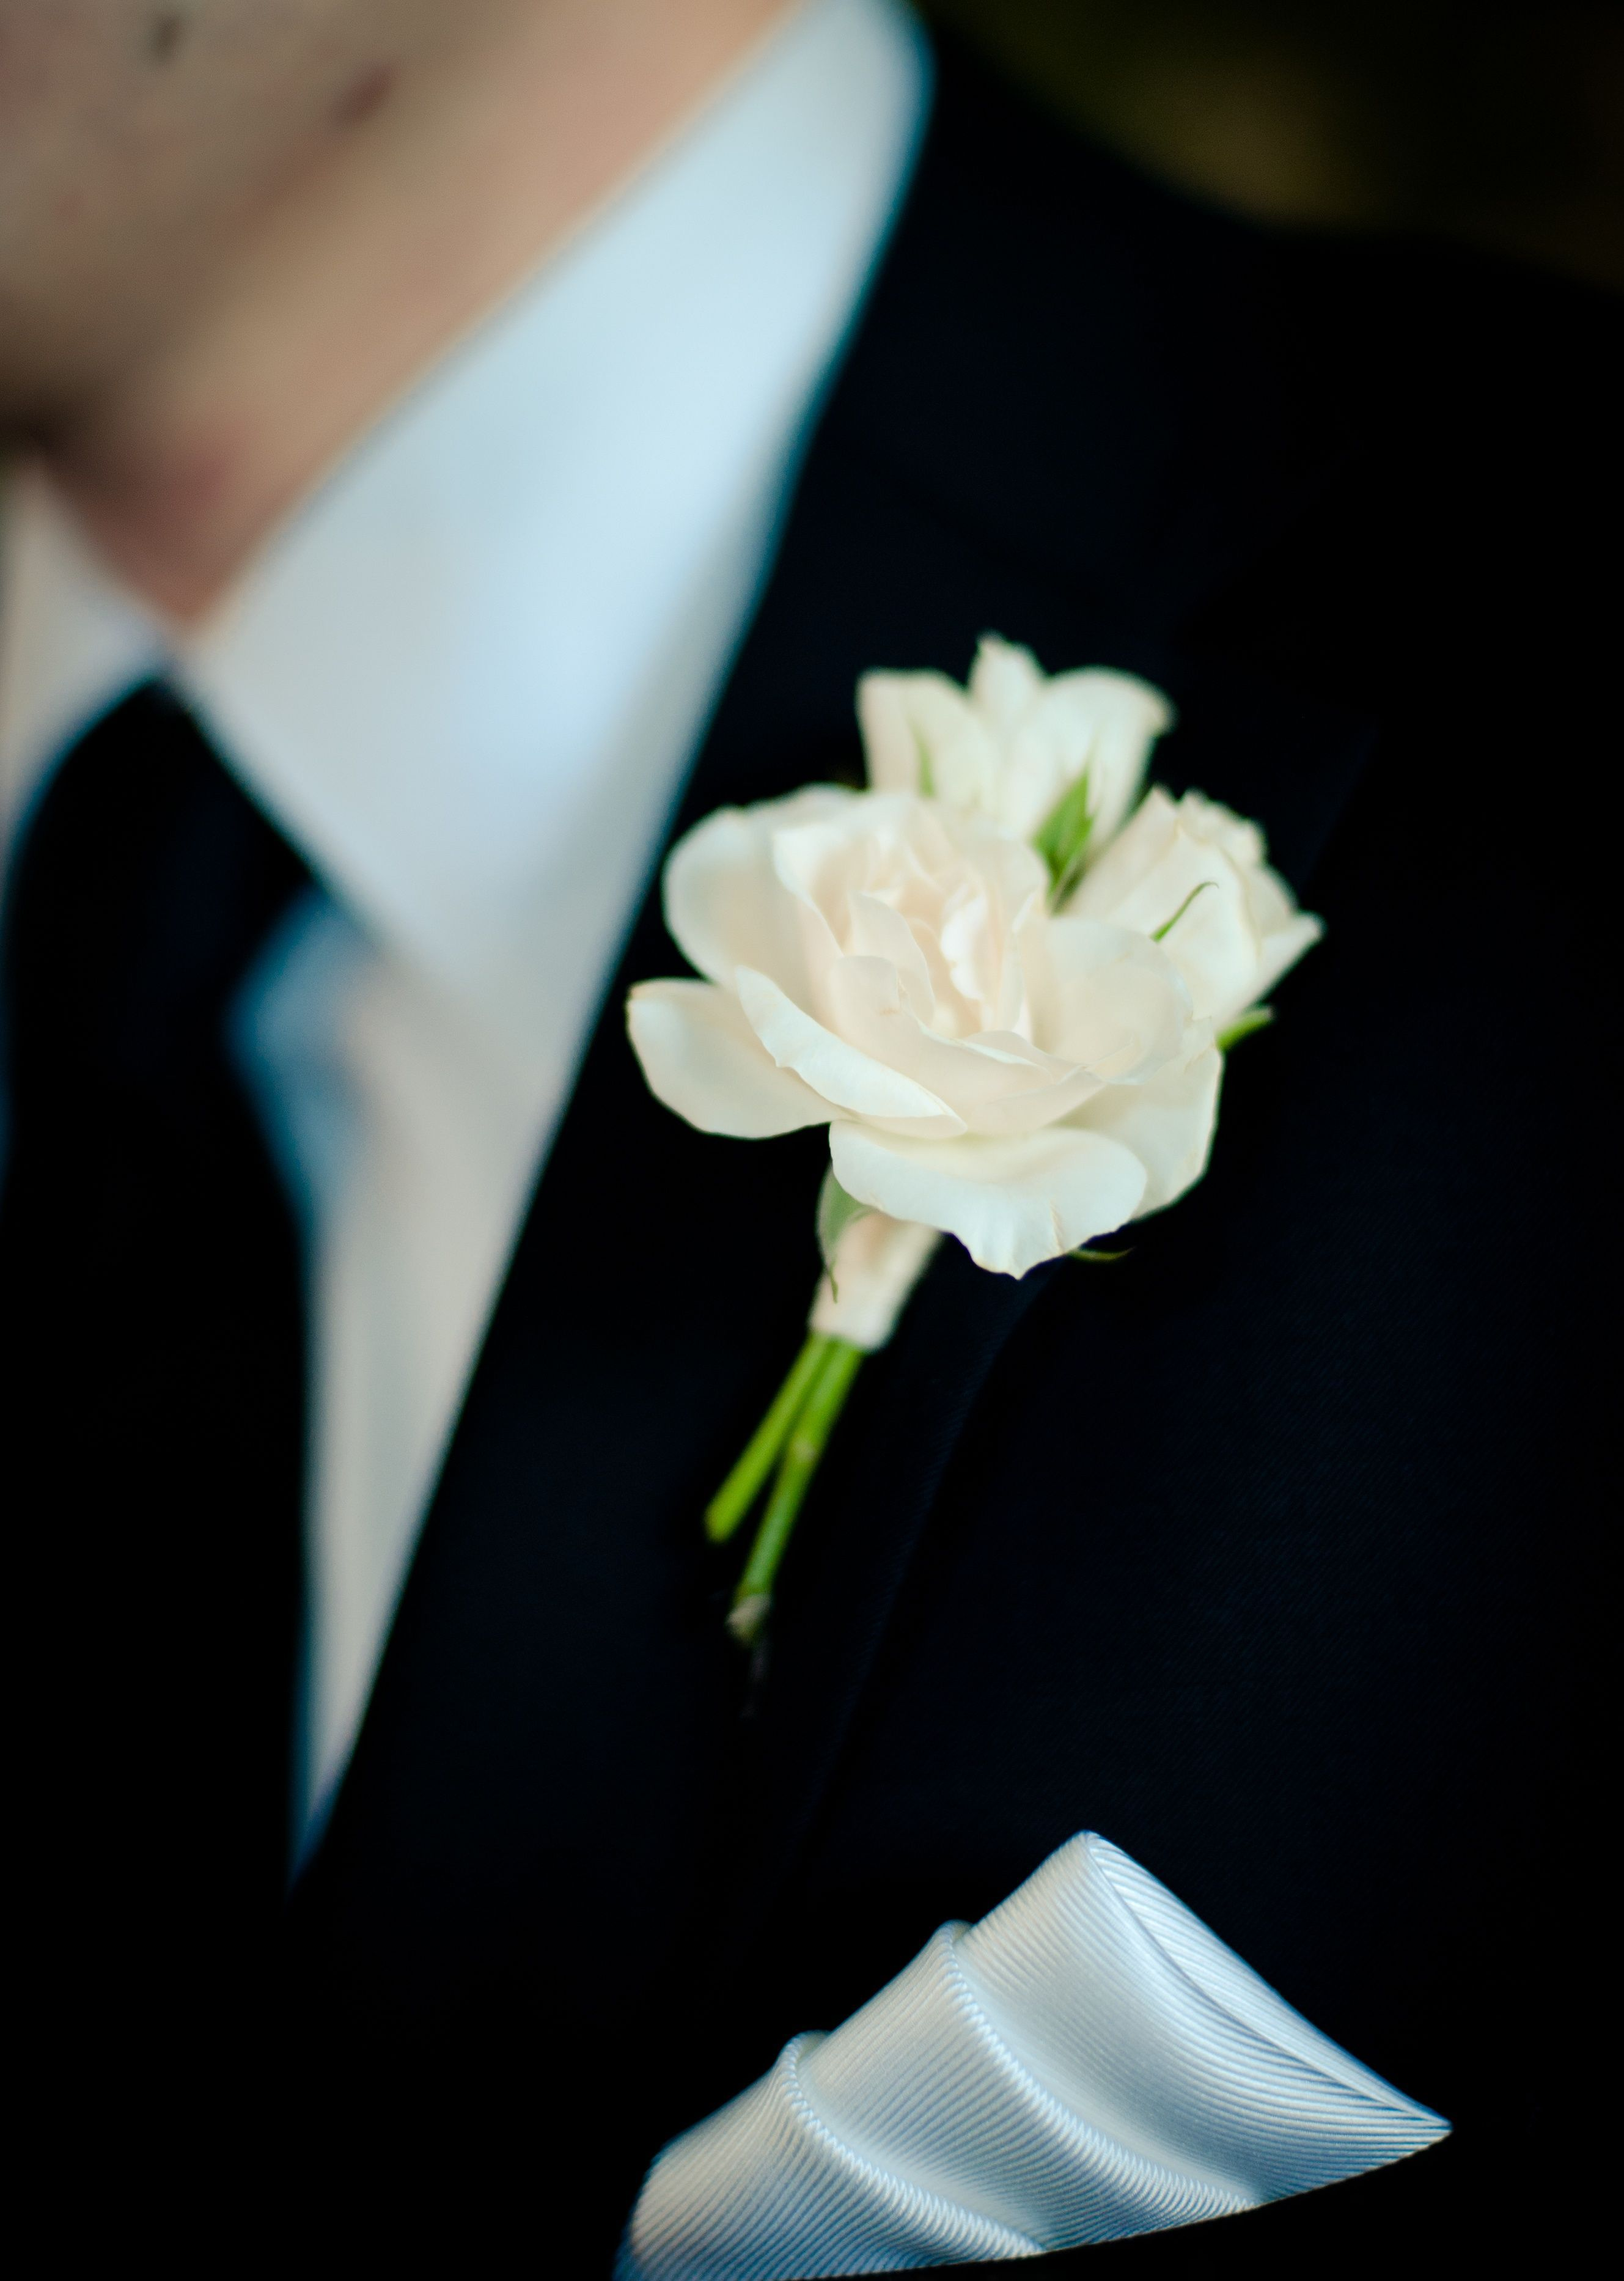 Ansteckblume Hochzeit The Father 39s Boutonnieres Will Be Ivory Spray Roses